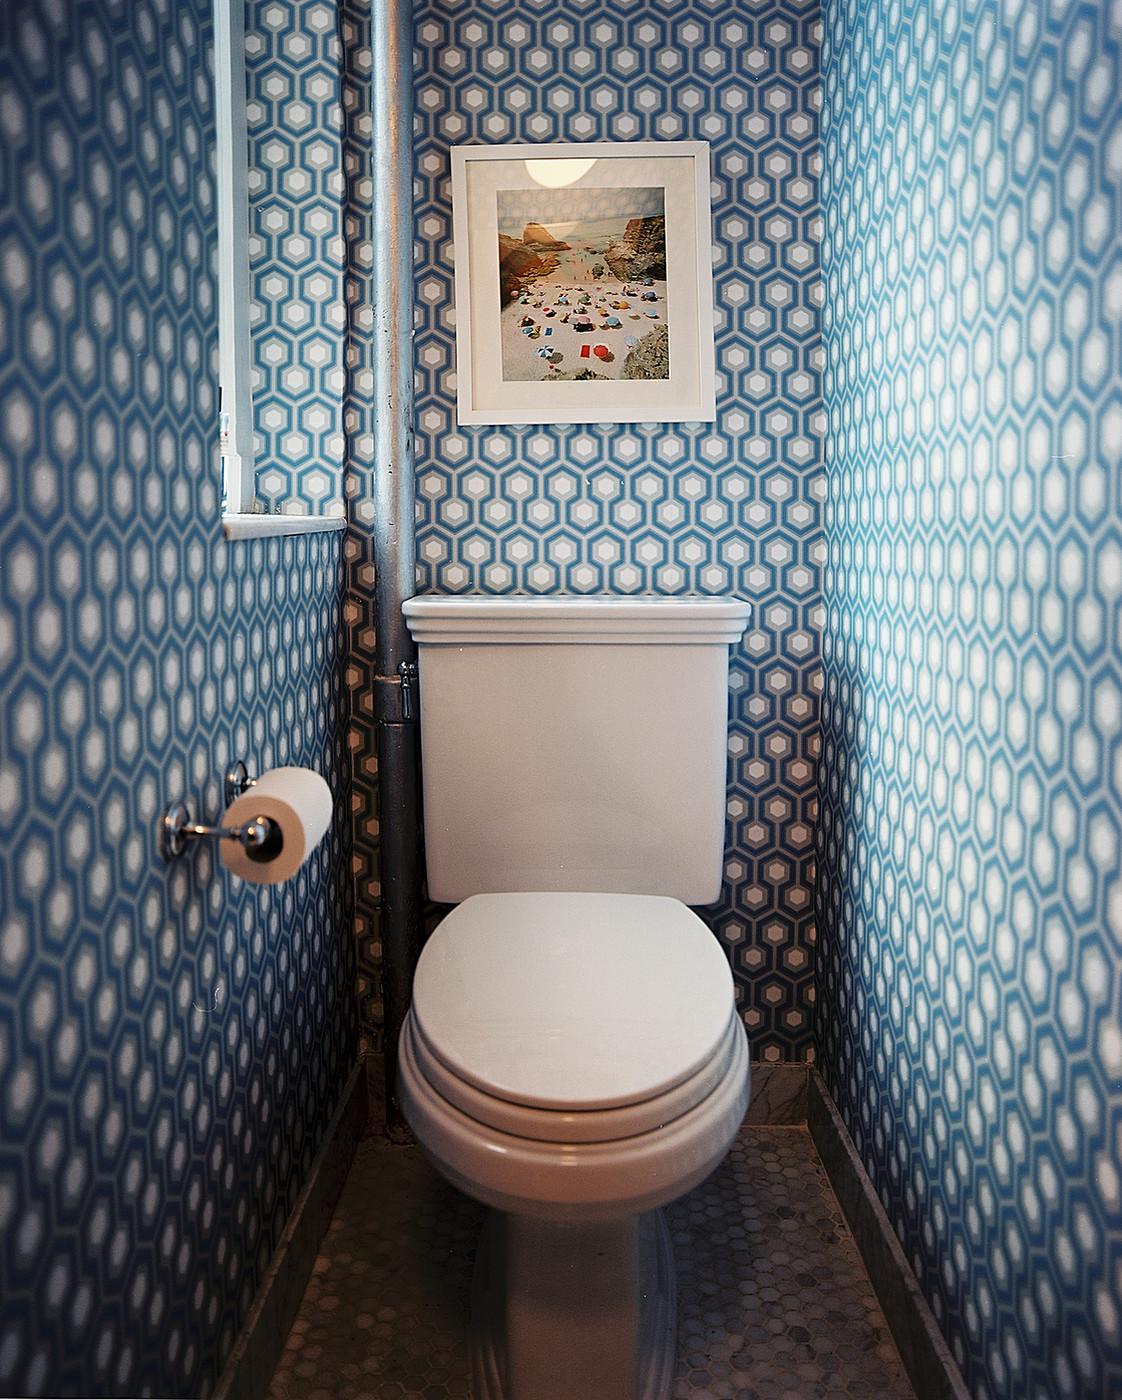 Geometric powder room wallpaper design ideas lonny - Powder room wallpaper ideas ...